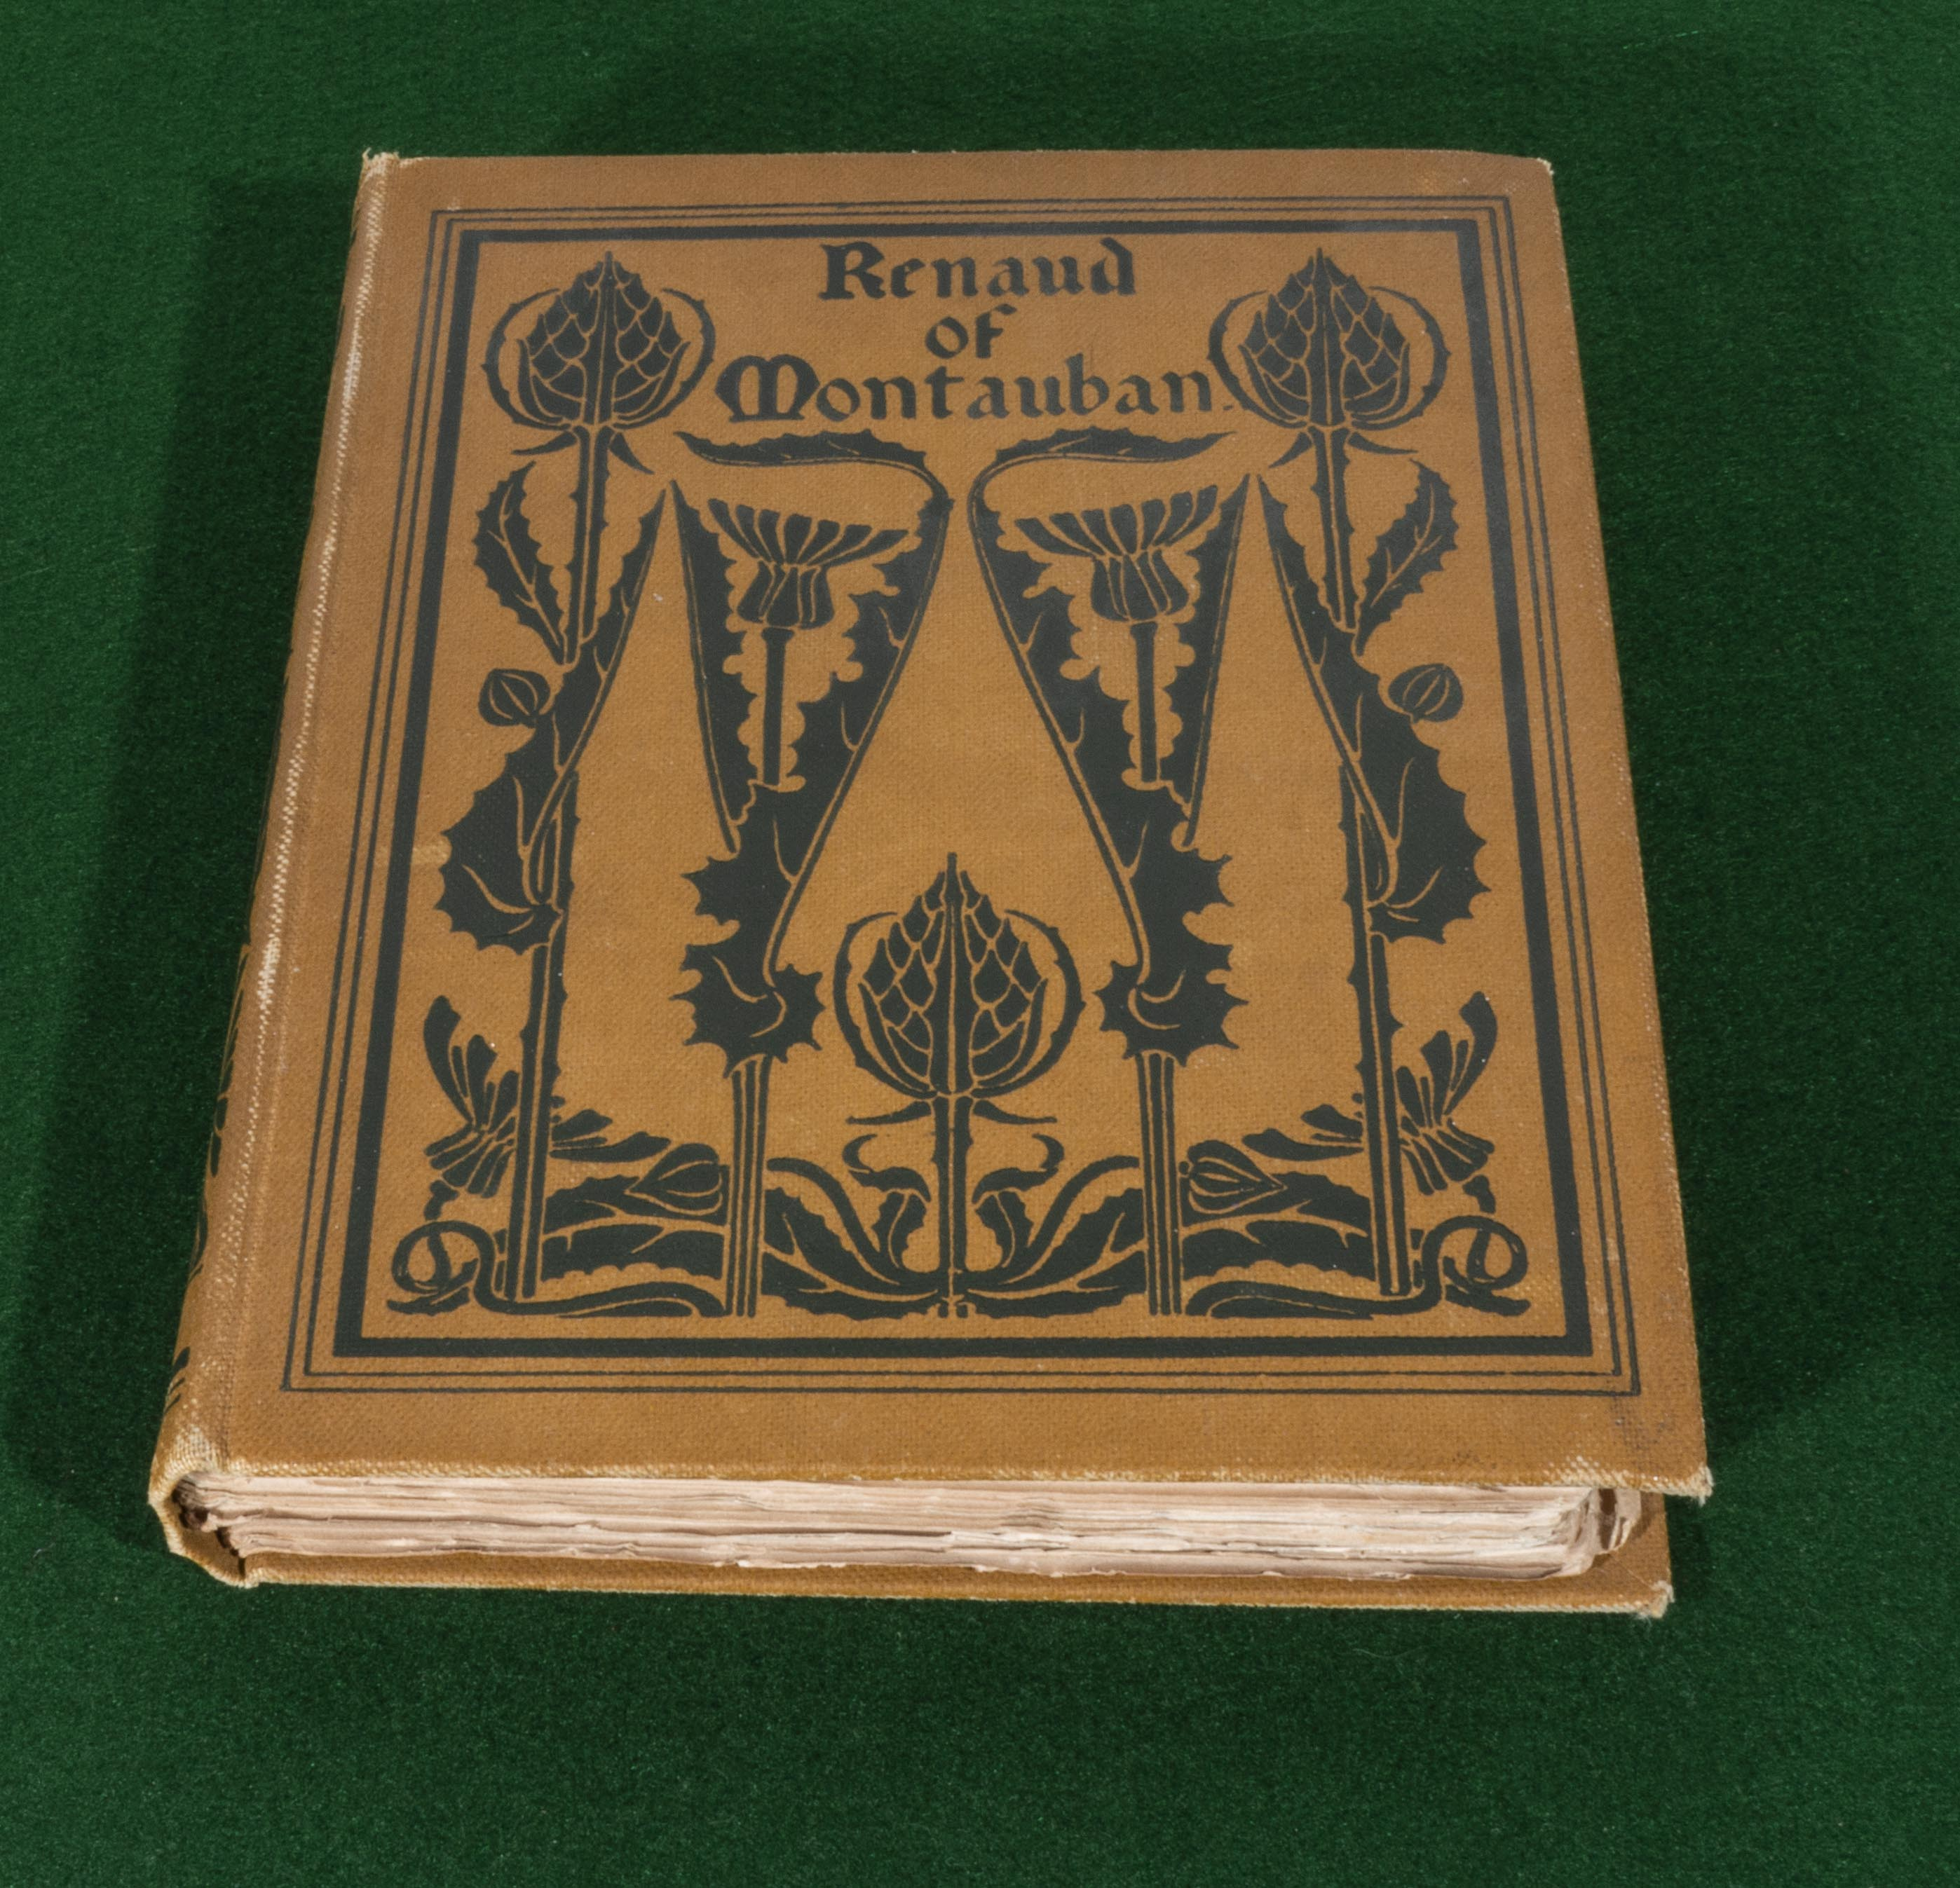 Lot 57 - An edition of Renaud of Montauban translated from French by William Caxton and published by George